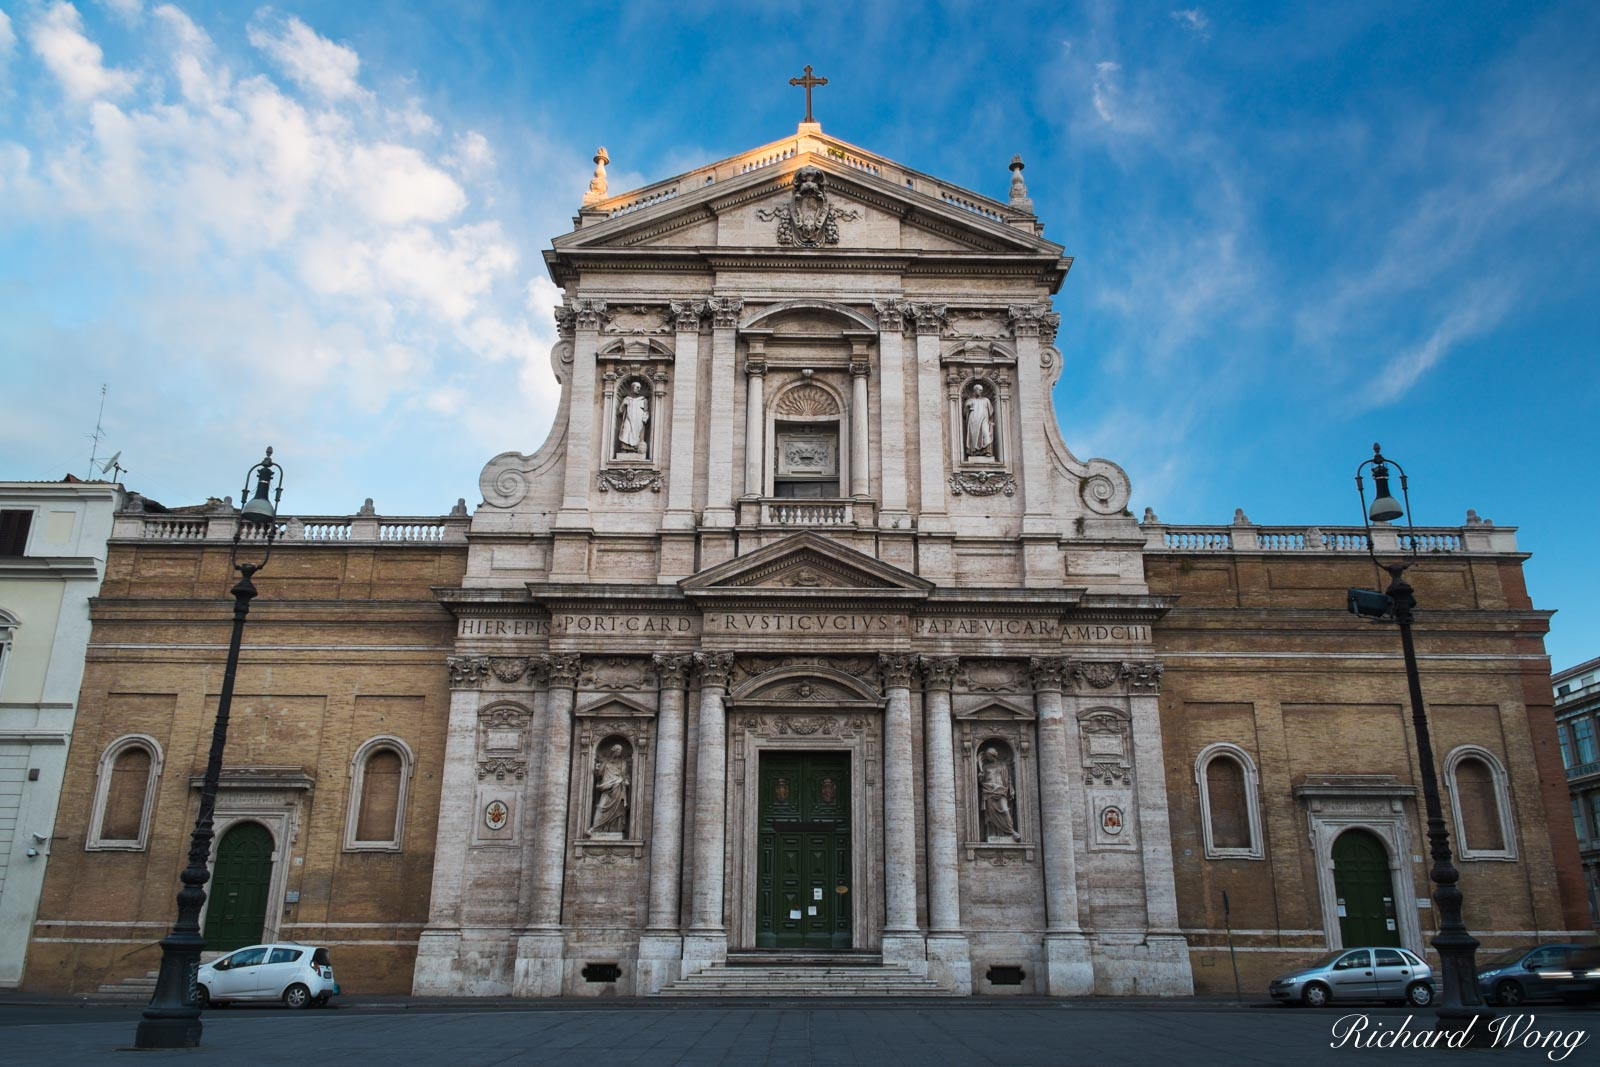 architecture, chiesa di santa susanna alle terme di diocleziano, church of saint susanna at the baths of diocletian, city, dawn, europe, exterior, first light, historic site, italia, italy, lazio, mor, photo